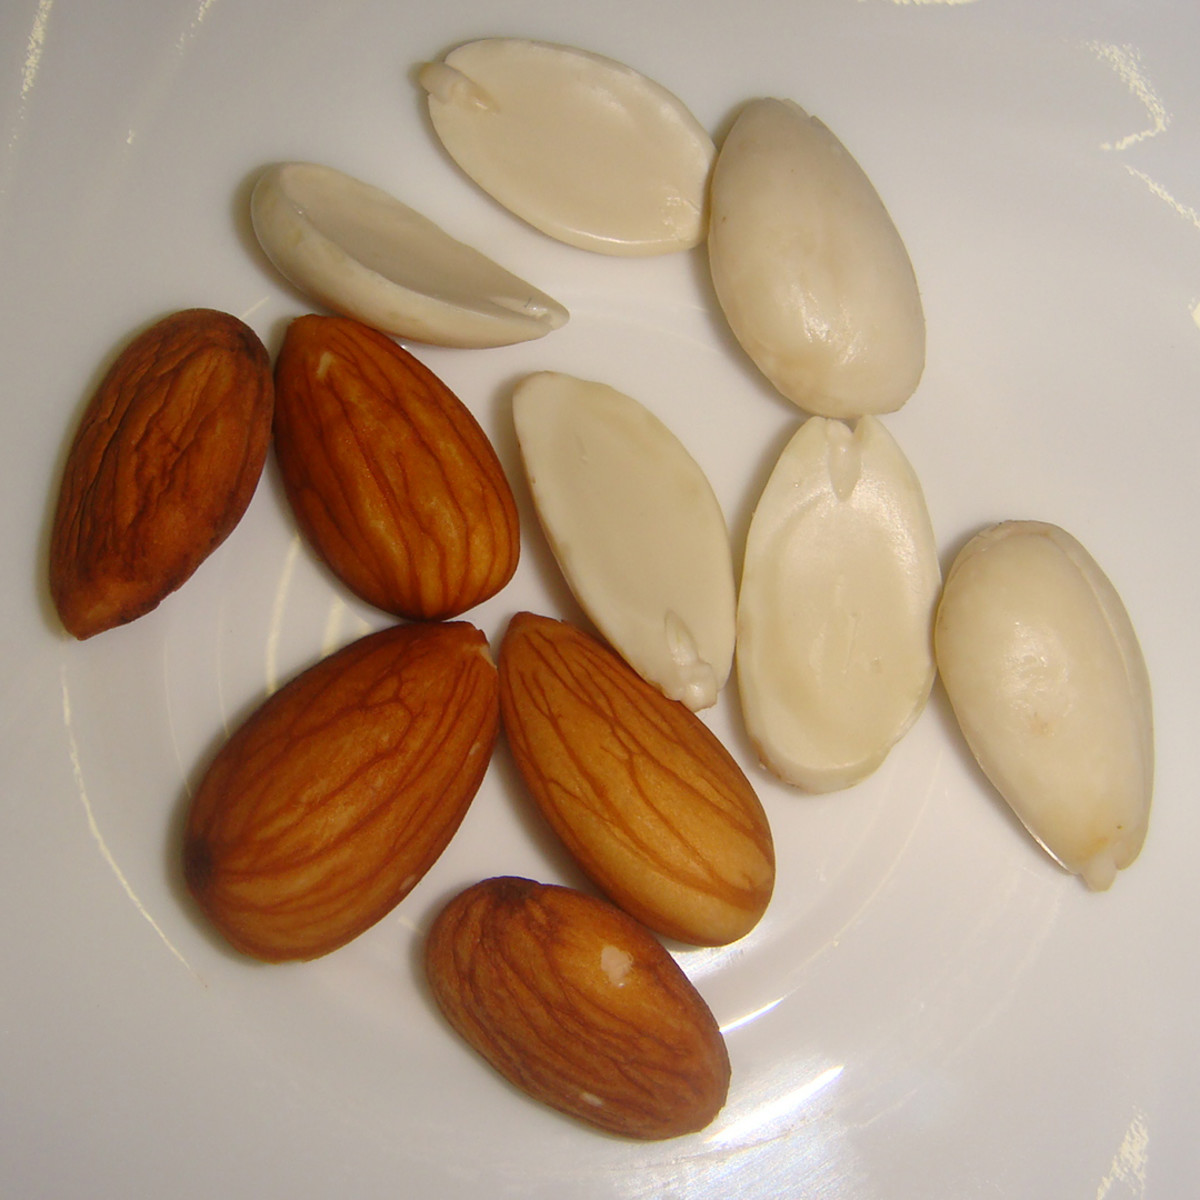 Health Benefits of Soaking Almonds in Water Before Eating